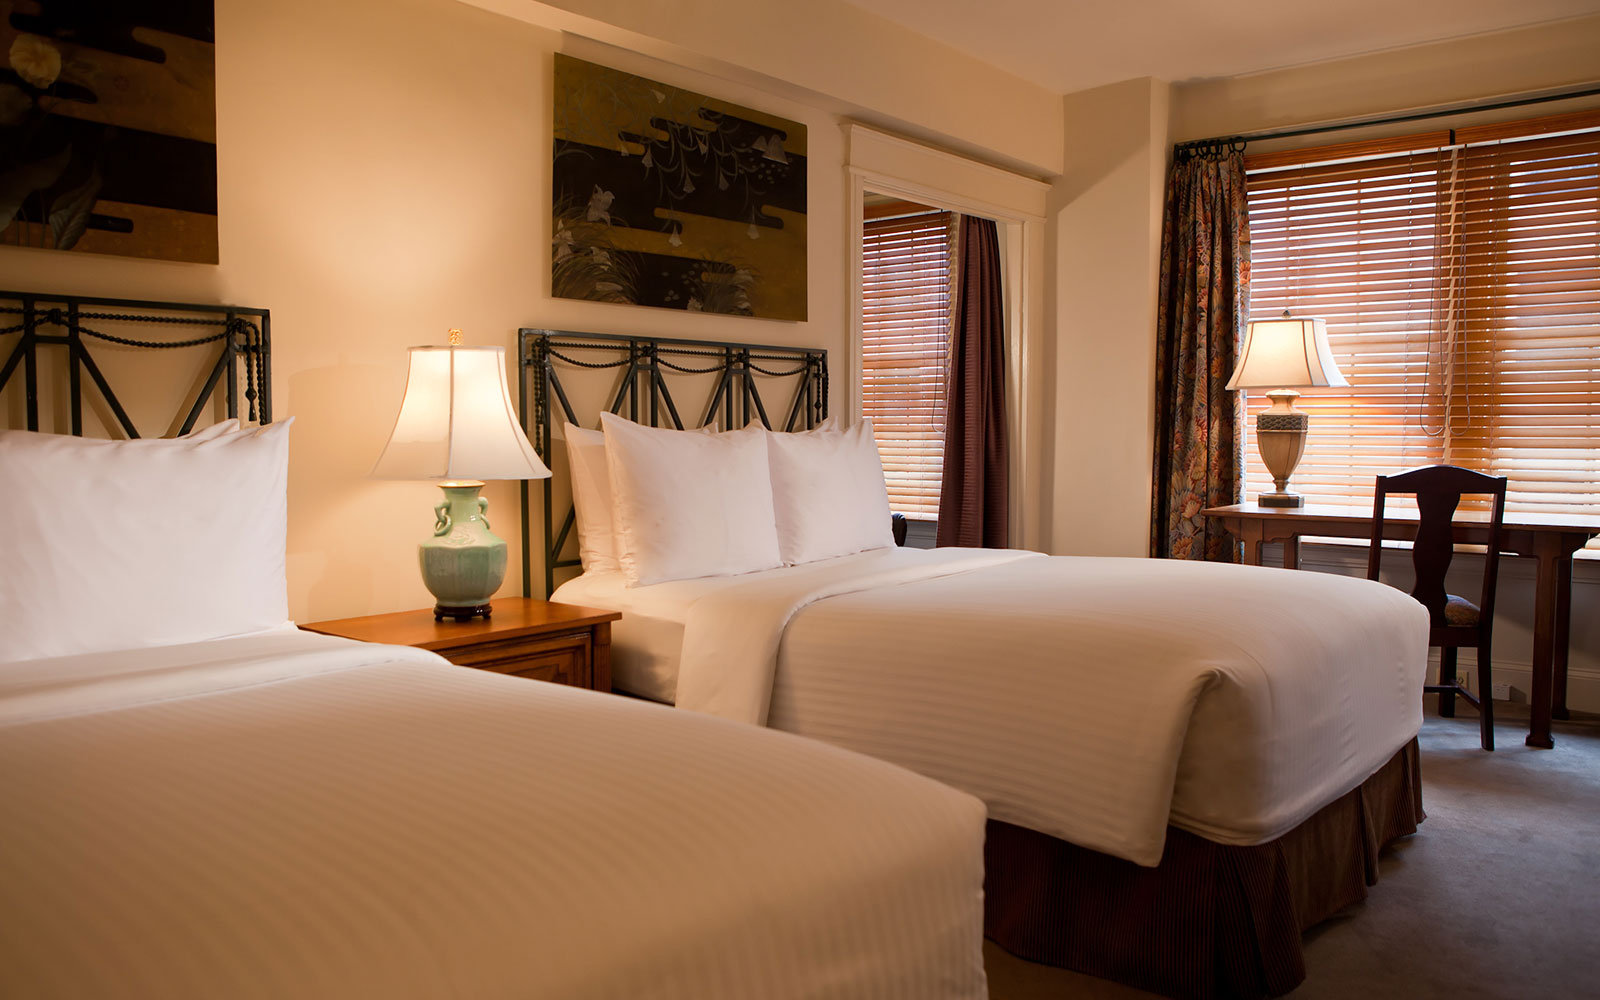 Luxurious washington dc boutique hotel rooms hotel lombardy for Boutique rooms